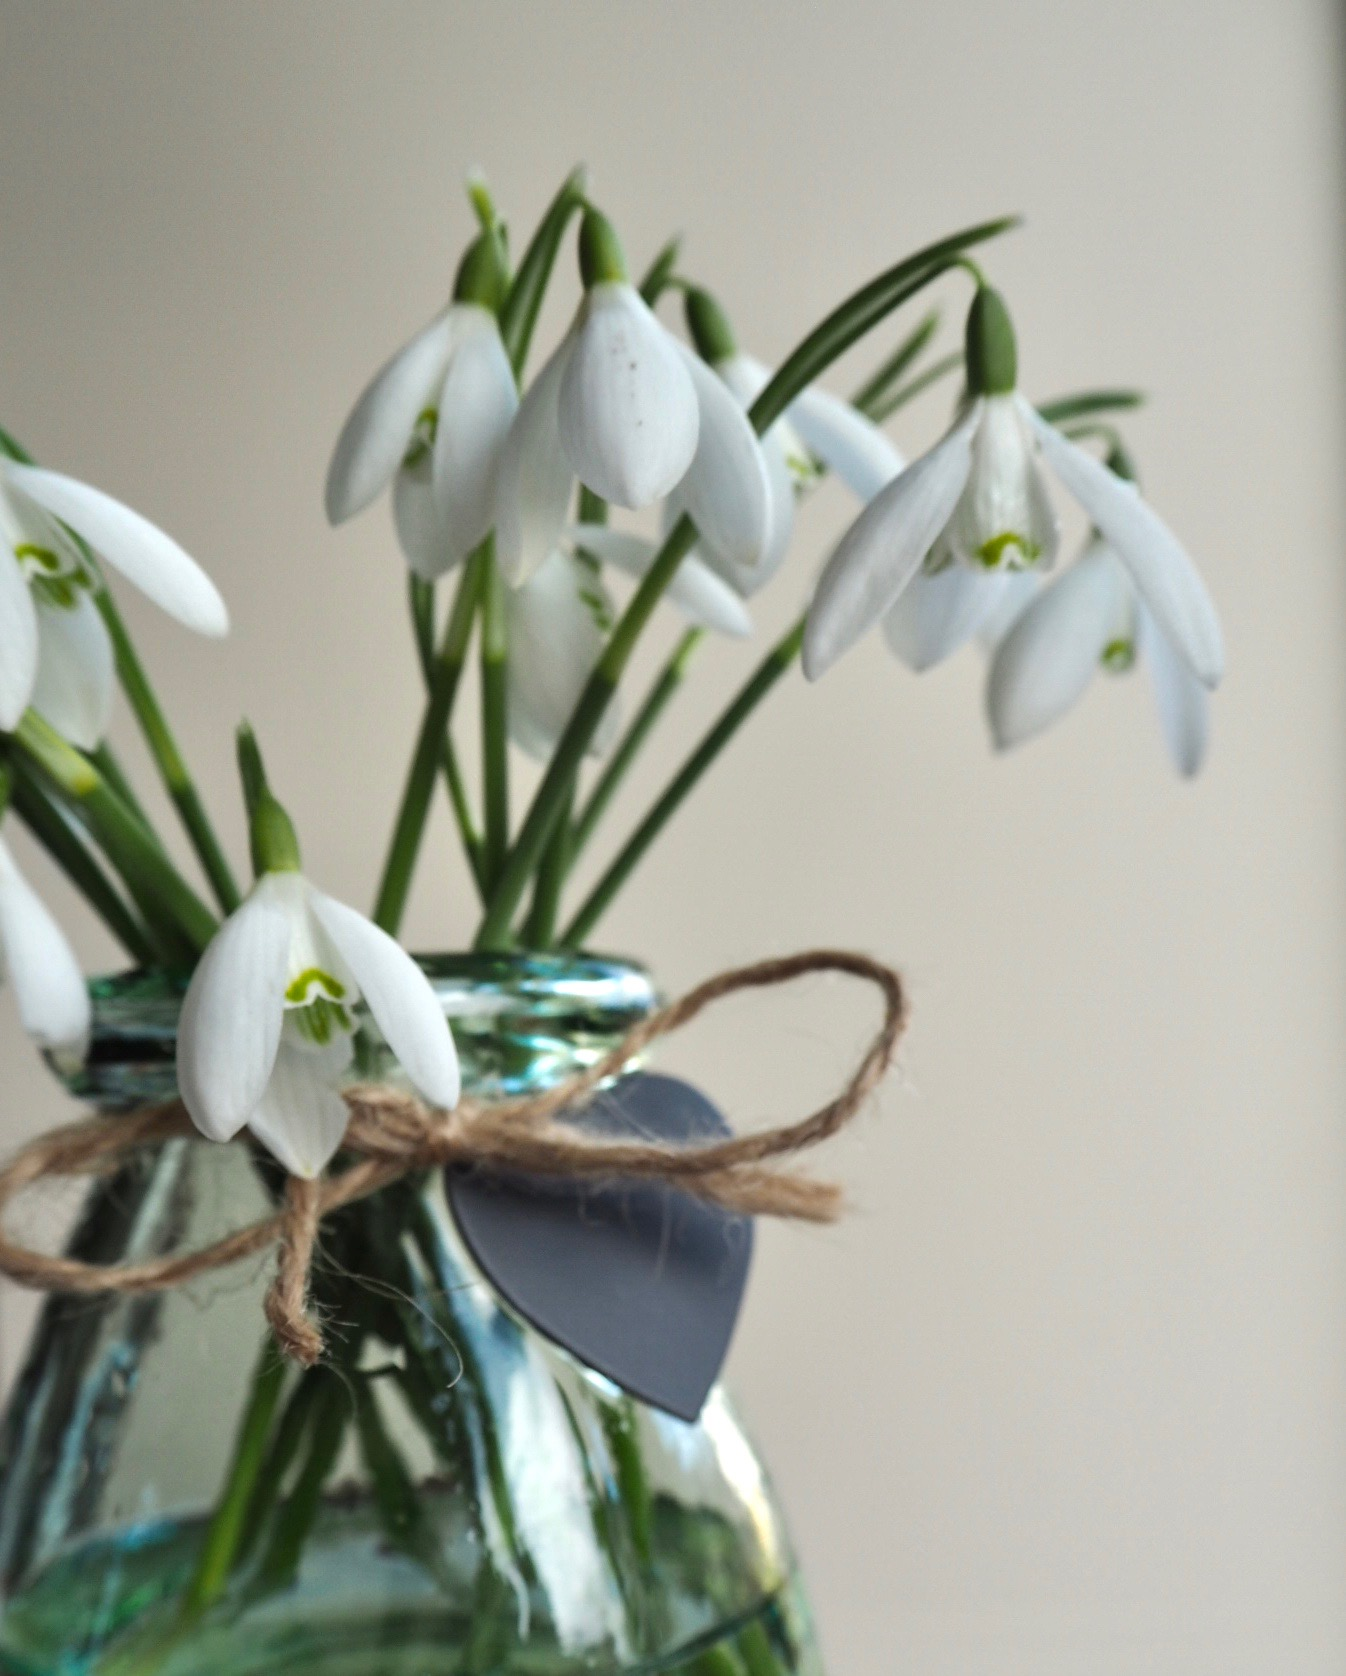 Collecting snowdrops, the smallest of things.